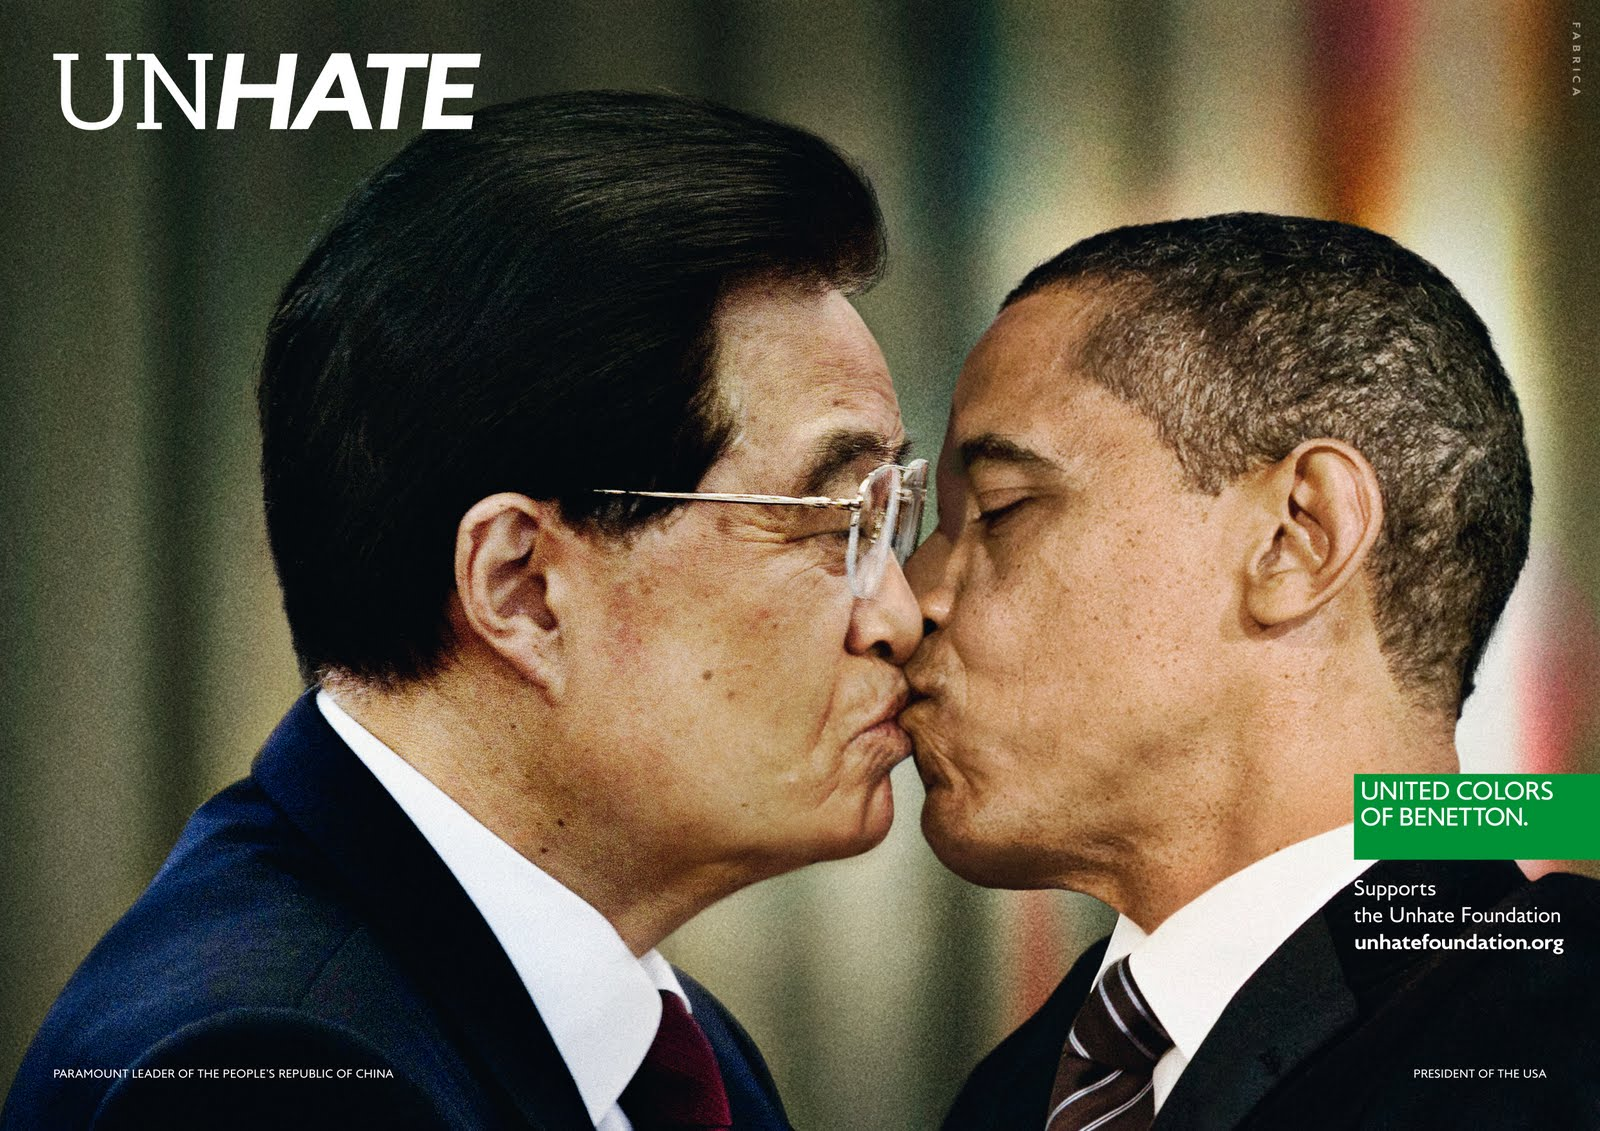 Funny Face Meme Tagalog : Unhate spread the love not hate funny pinoy jokes atbp